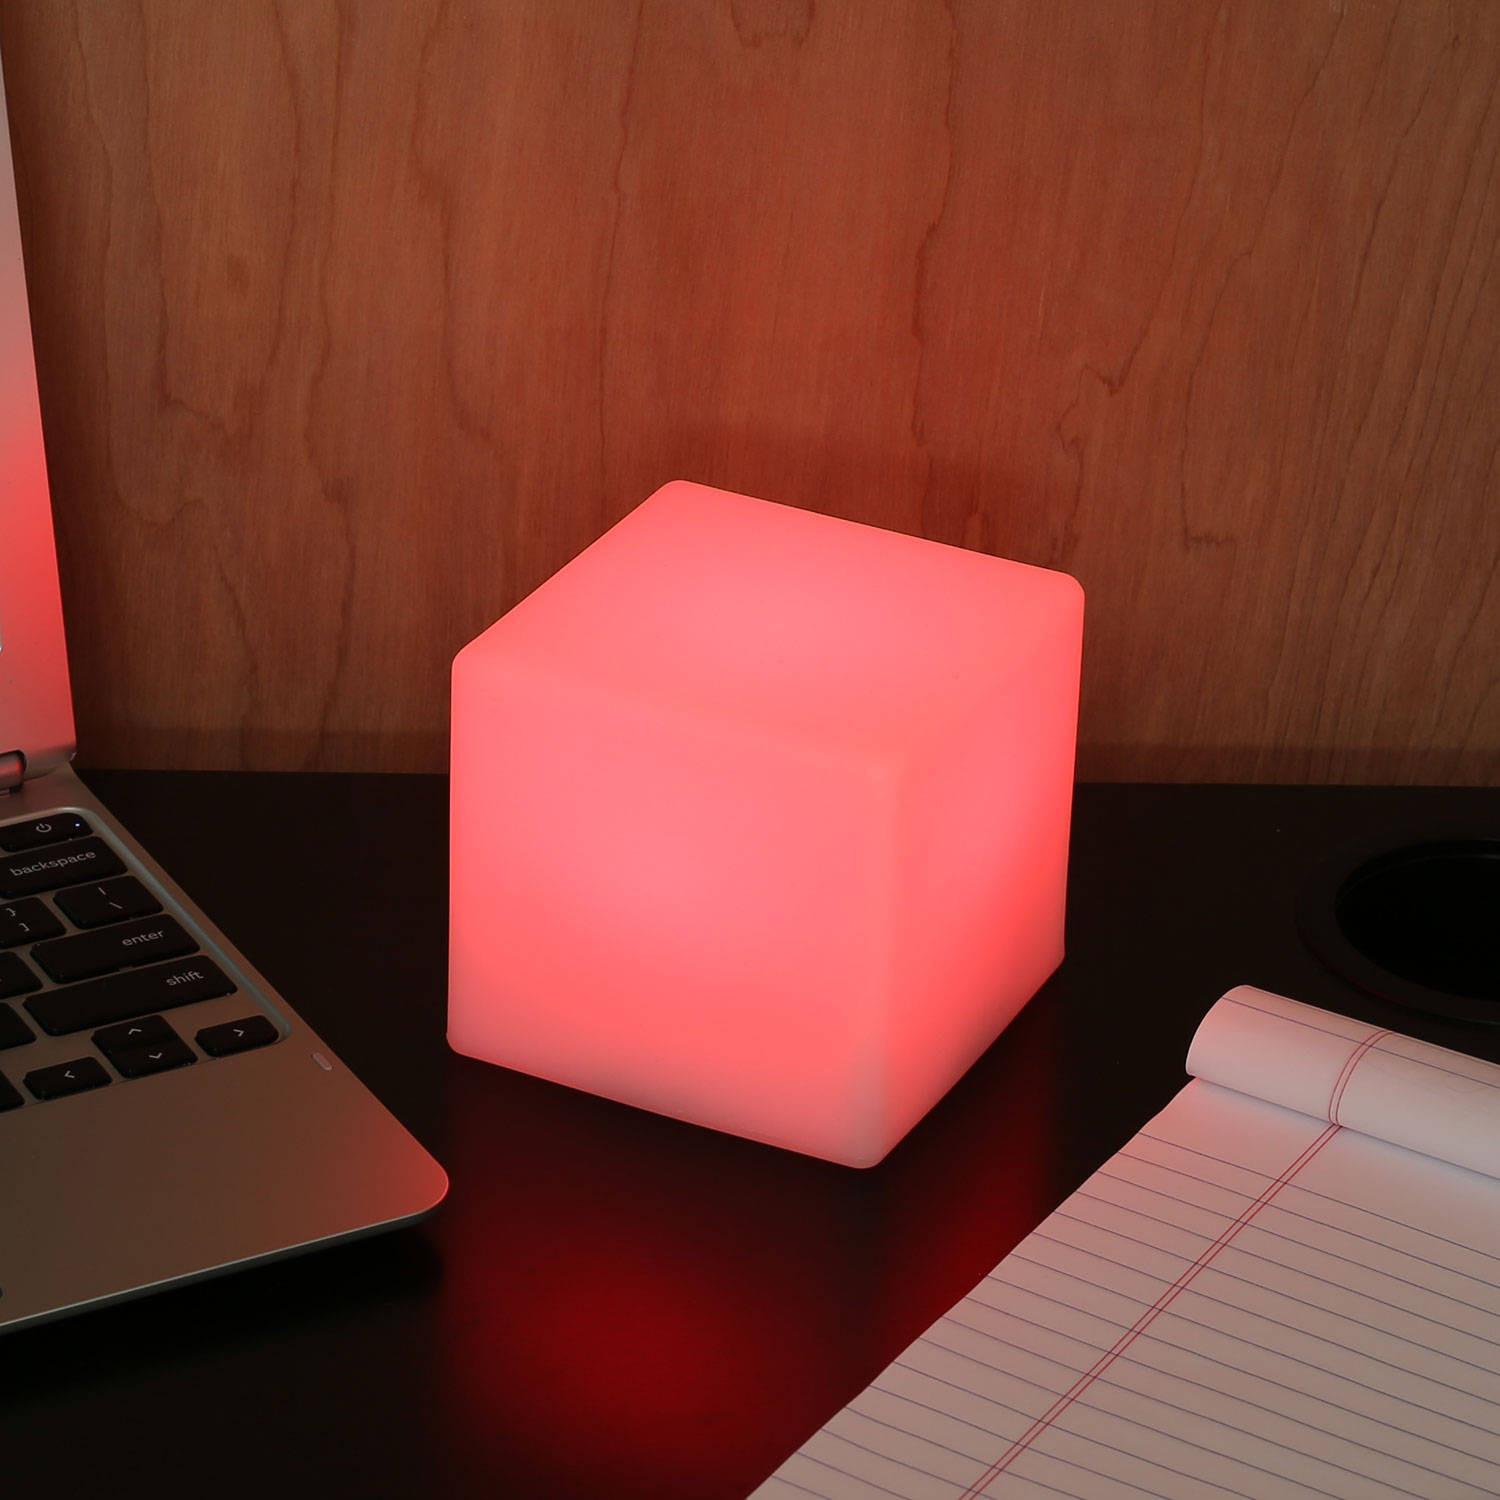 Lamplust mini color changing table light outdoor lighting lamplust mini color changing table light mozeypictures Gallery